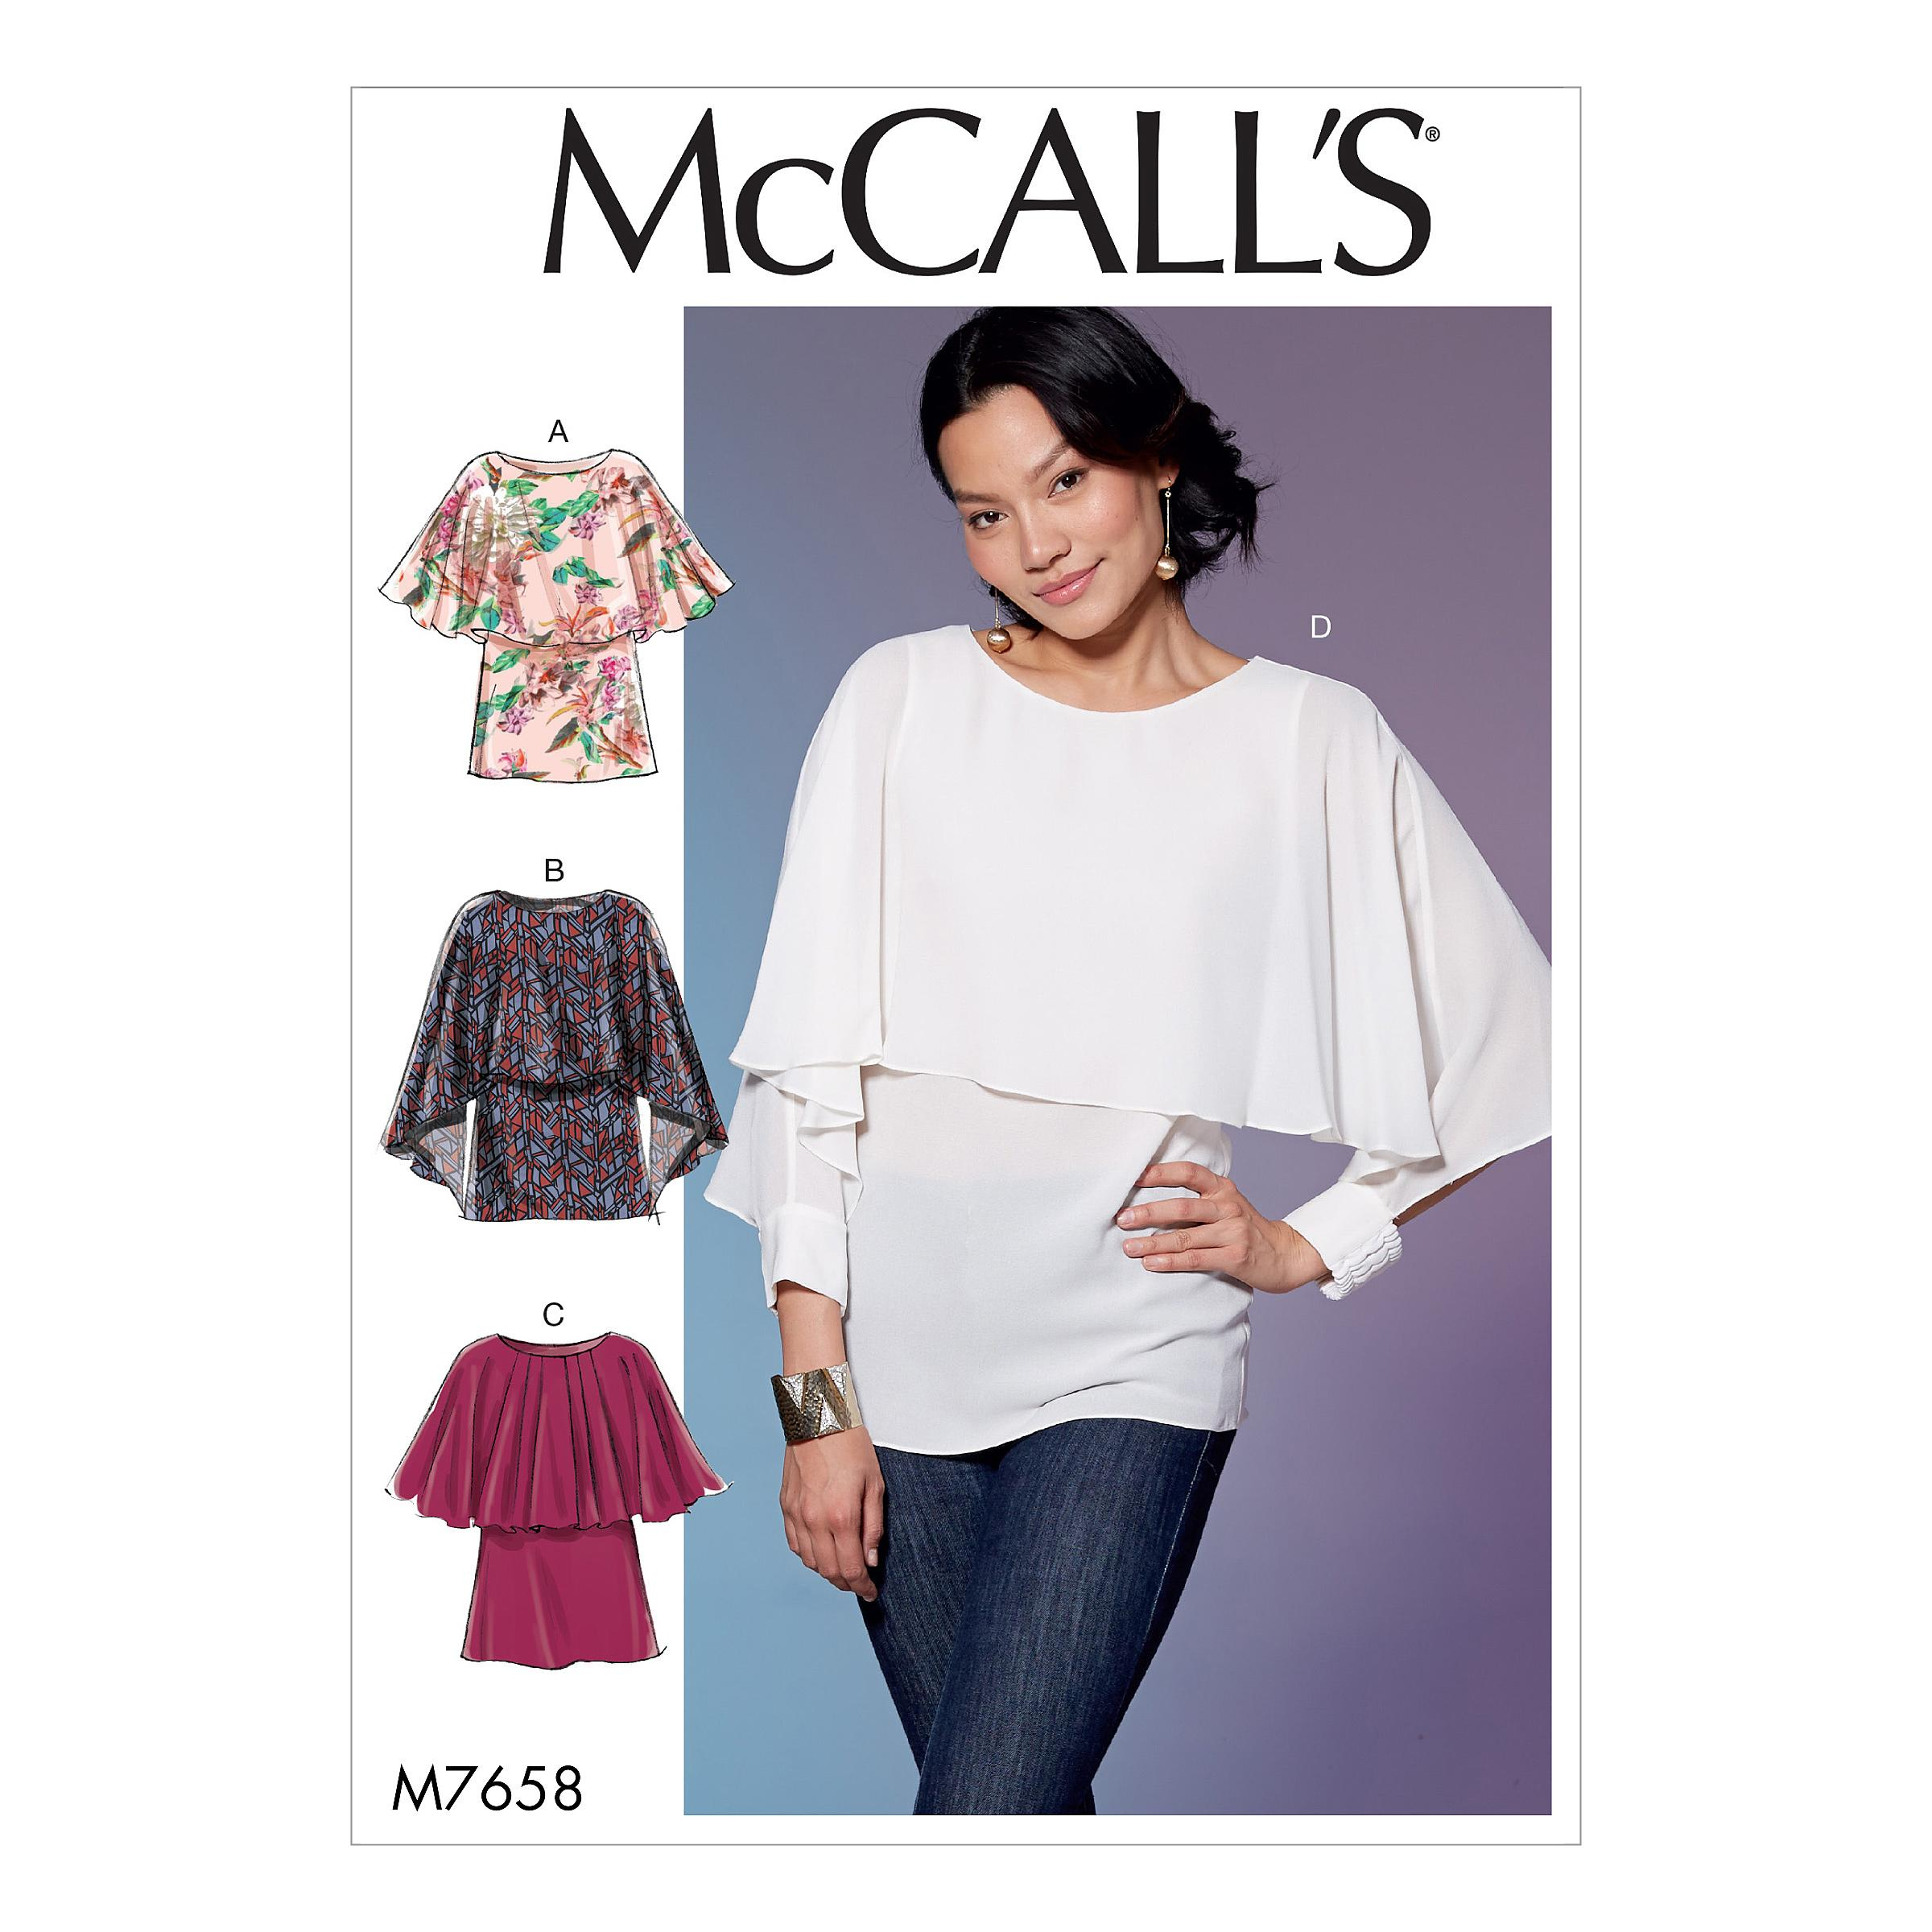 McCalls M7658 Misses Tops